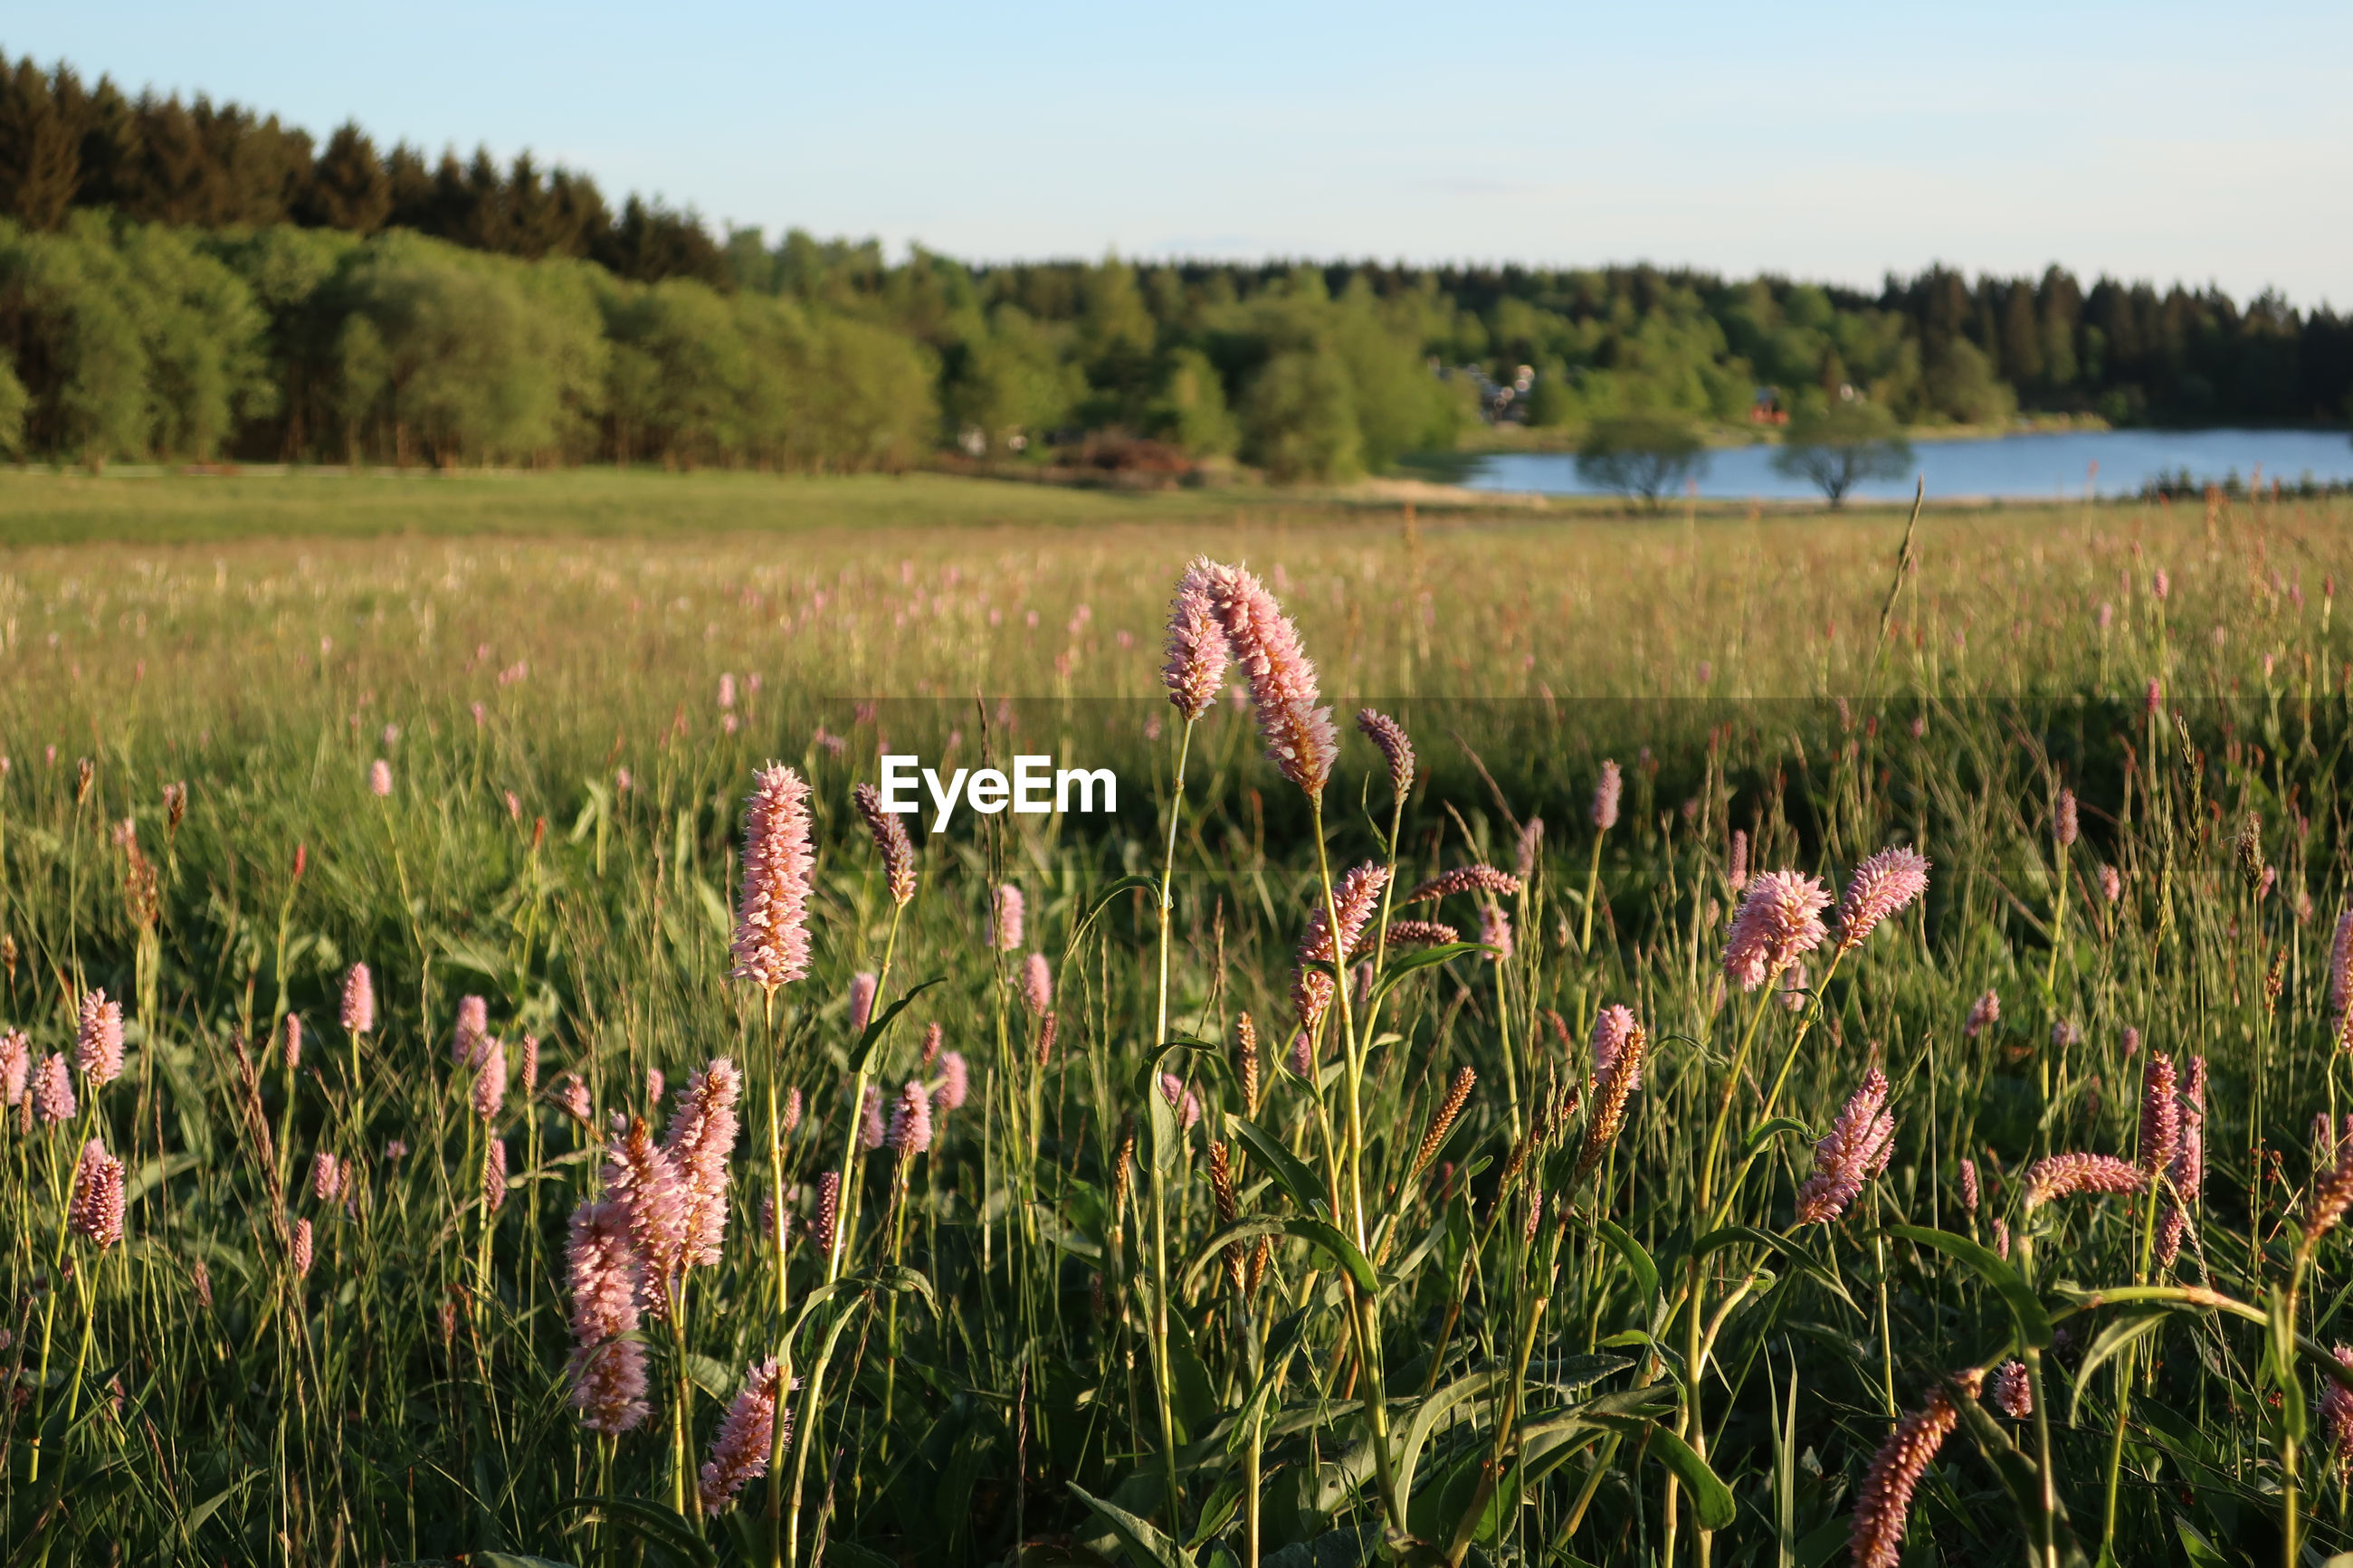 plant, grass, natural environment, landscape, land, nature, prairie, sky, meadow, grassland, beauty in nature, field, environment, growth, flower, scenics - nature, no people, tranquility, rural area, wetland, pasture, rural scene, flowering plant, wildflower, tranquil scene, tree, agriculture, day, non-urban scene, outdoors, marsh, water, food, fen, crop, green, freshness, focus on foreground, pink, clear sky, food and drink